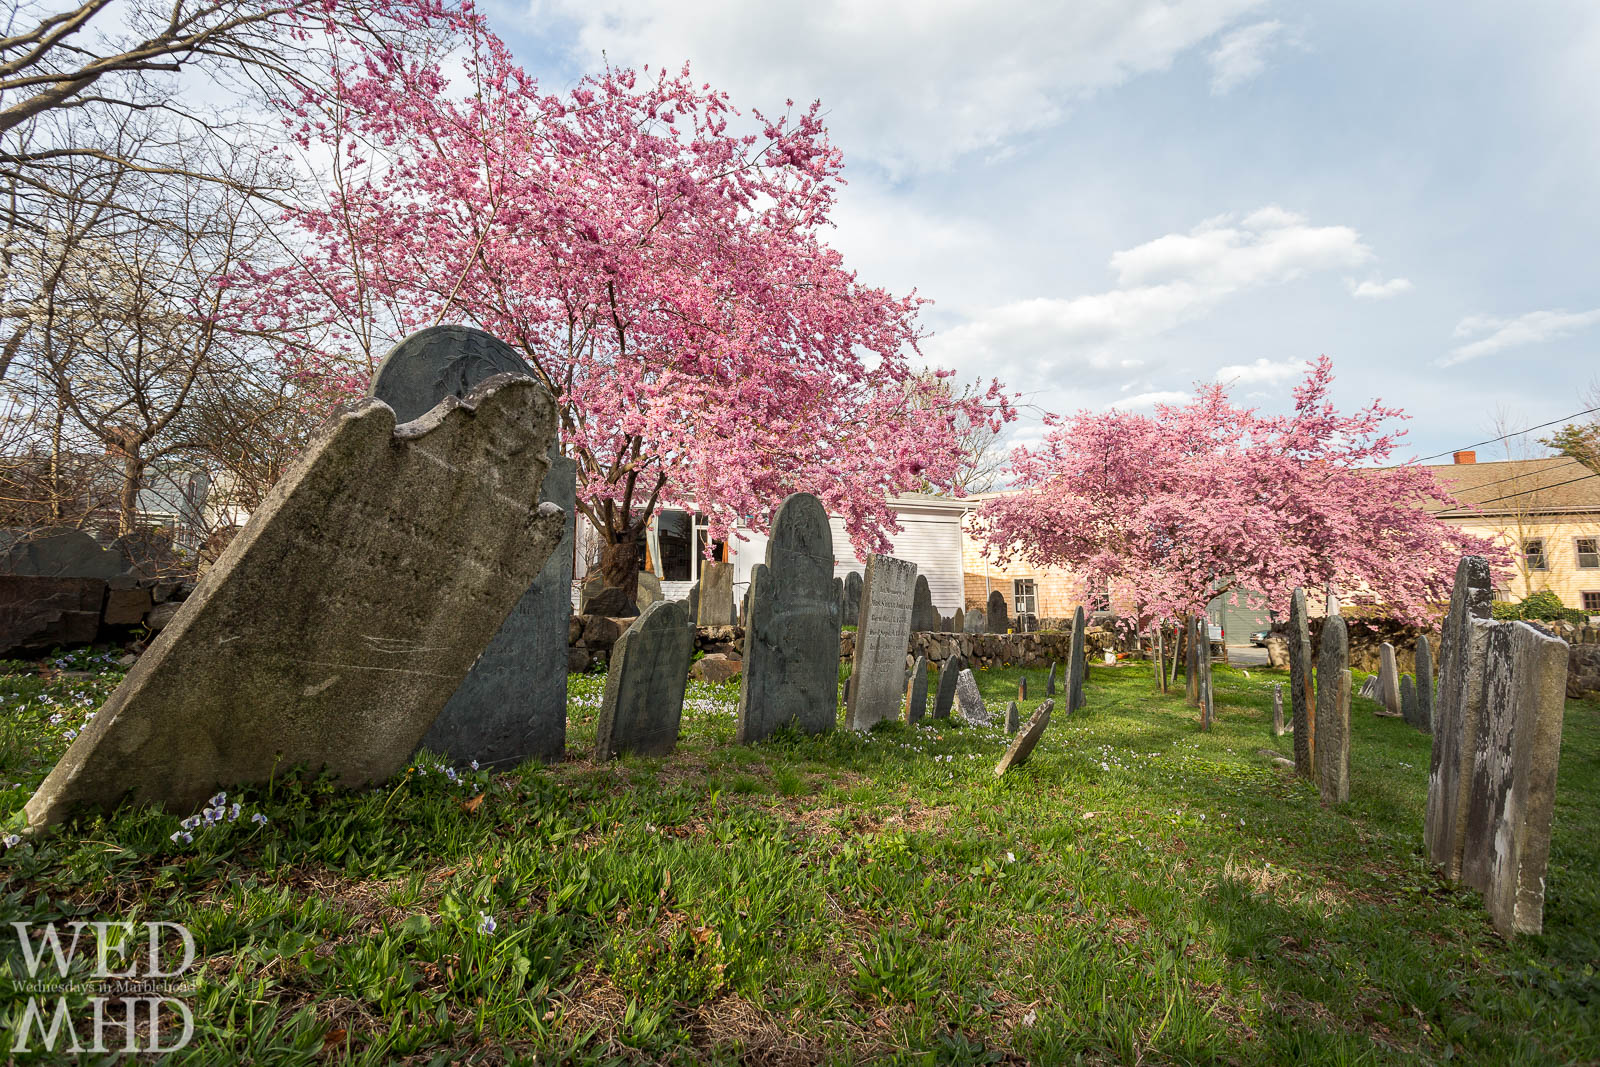 Cherry blossoms in full bloom add a touch of Spring to the Harris Street cemetary